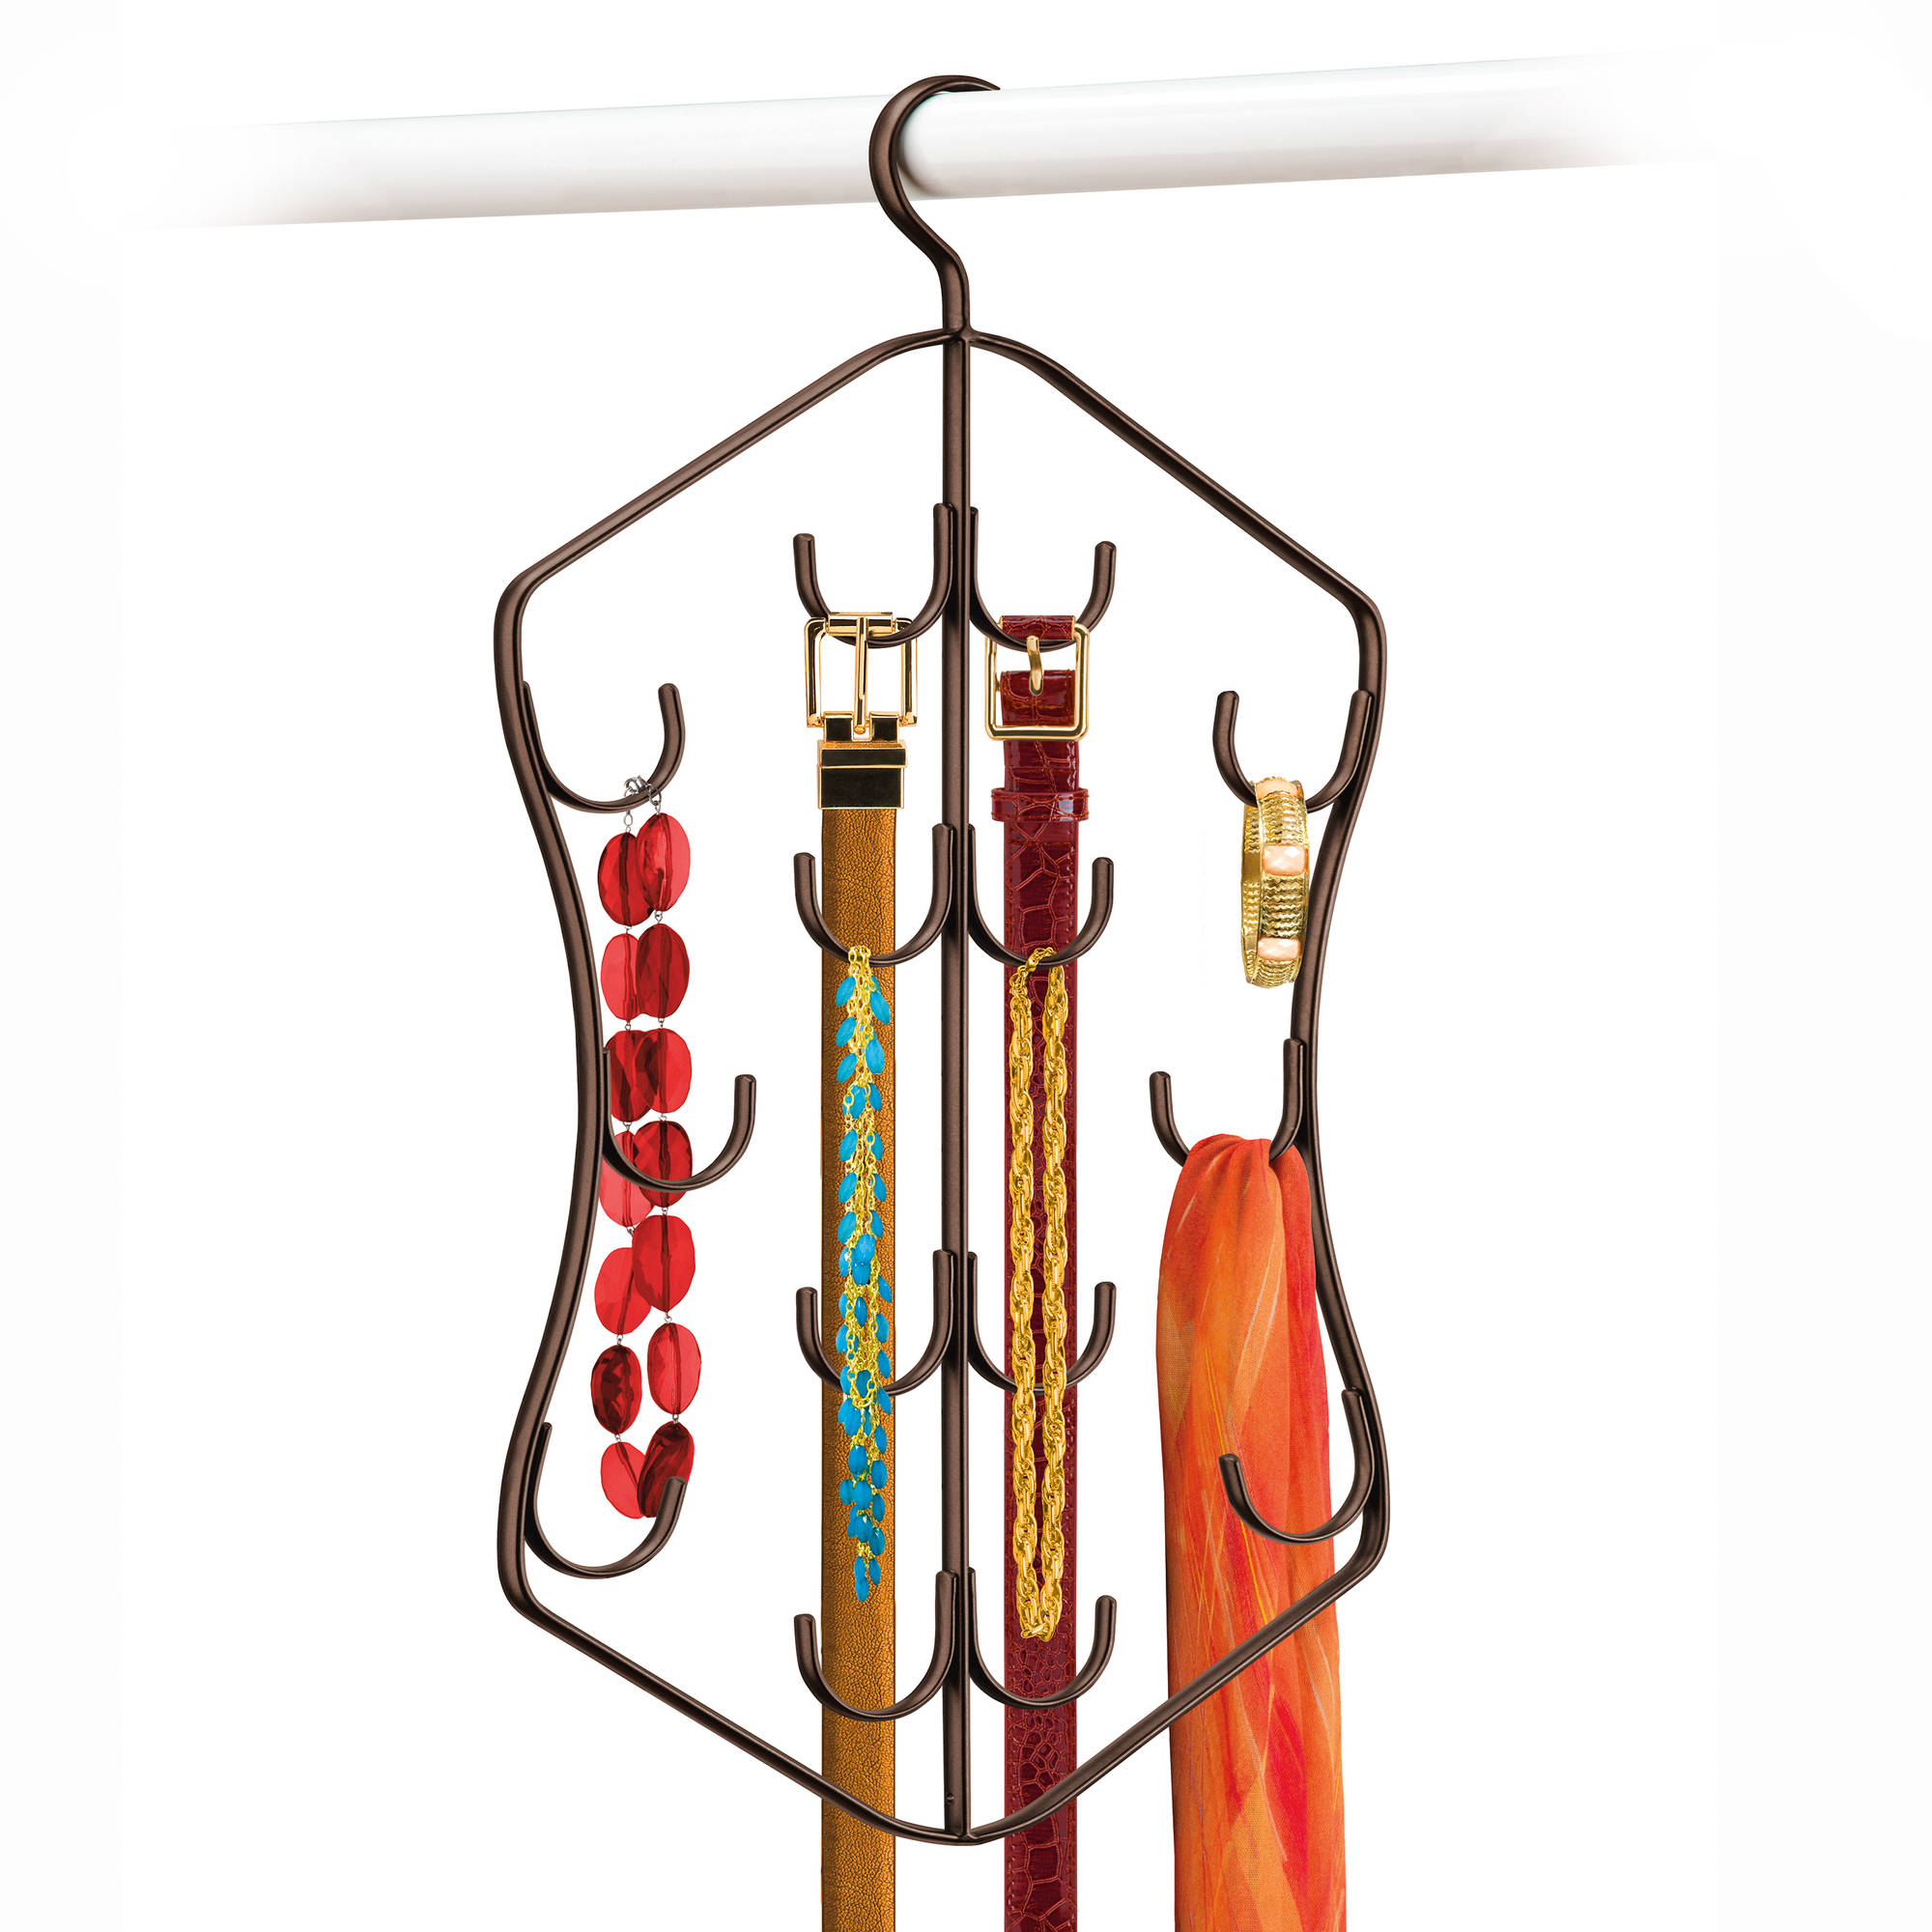 Lynk Hanging Jewelry, Scarf, and Accessory Organizer - 14 Hook Closet Organizer Rack for Scarves, Belts, and Jewelry - Bronze